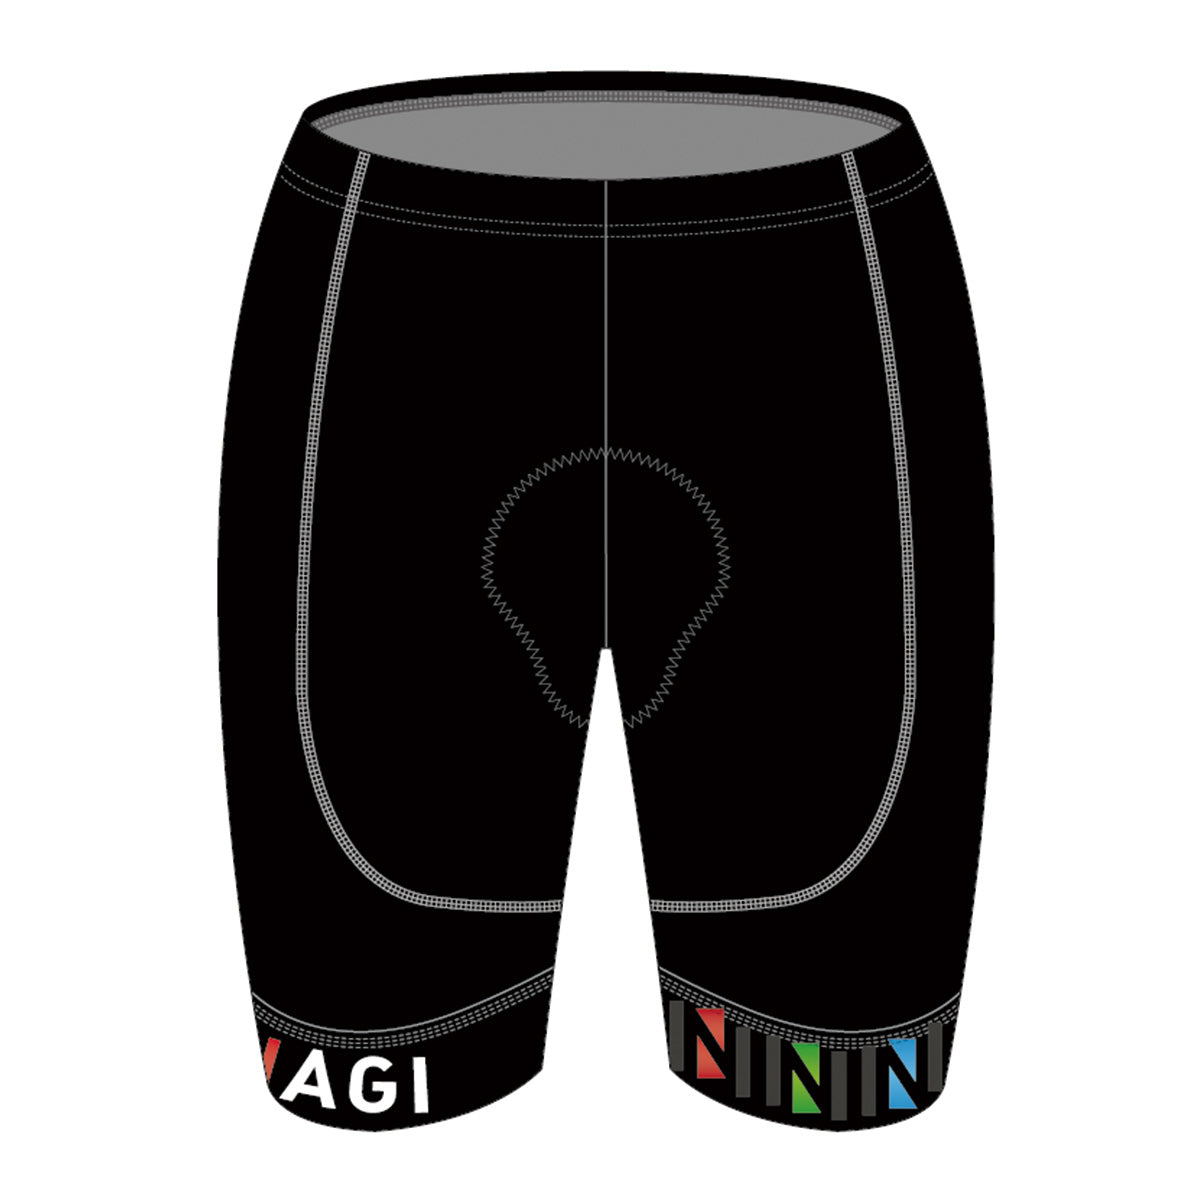 Team Nagi BLACK DIAMOND A Cycling Shorts